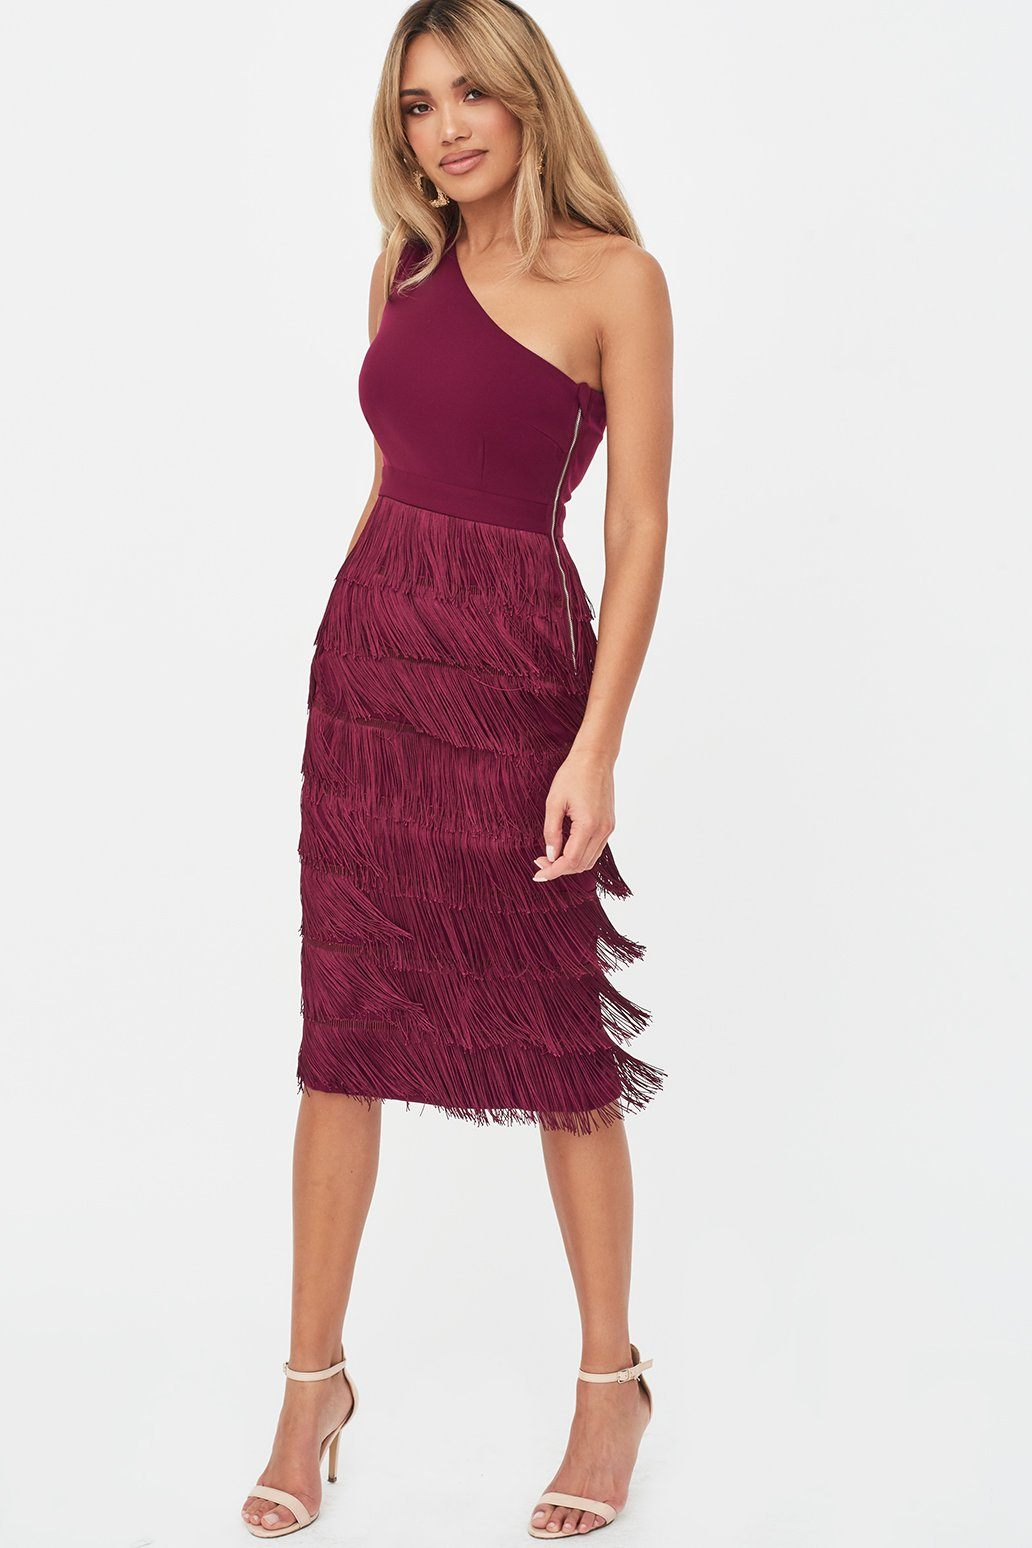 Lavish Alice One Shoulder Fringe Midi Dress in Burgundy